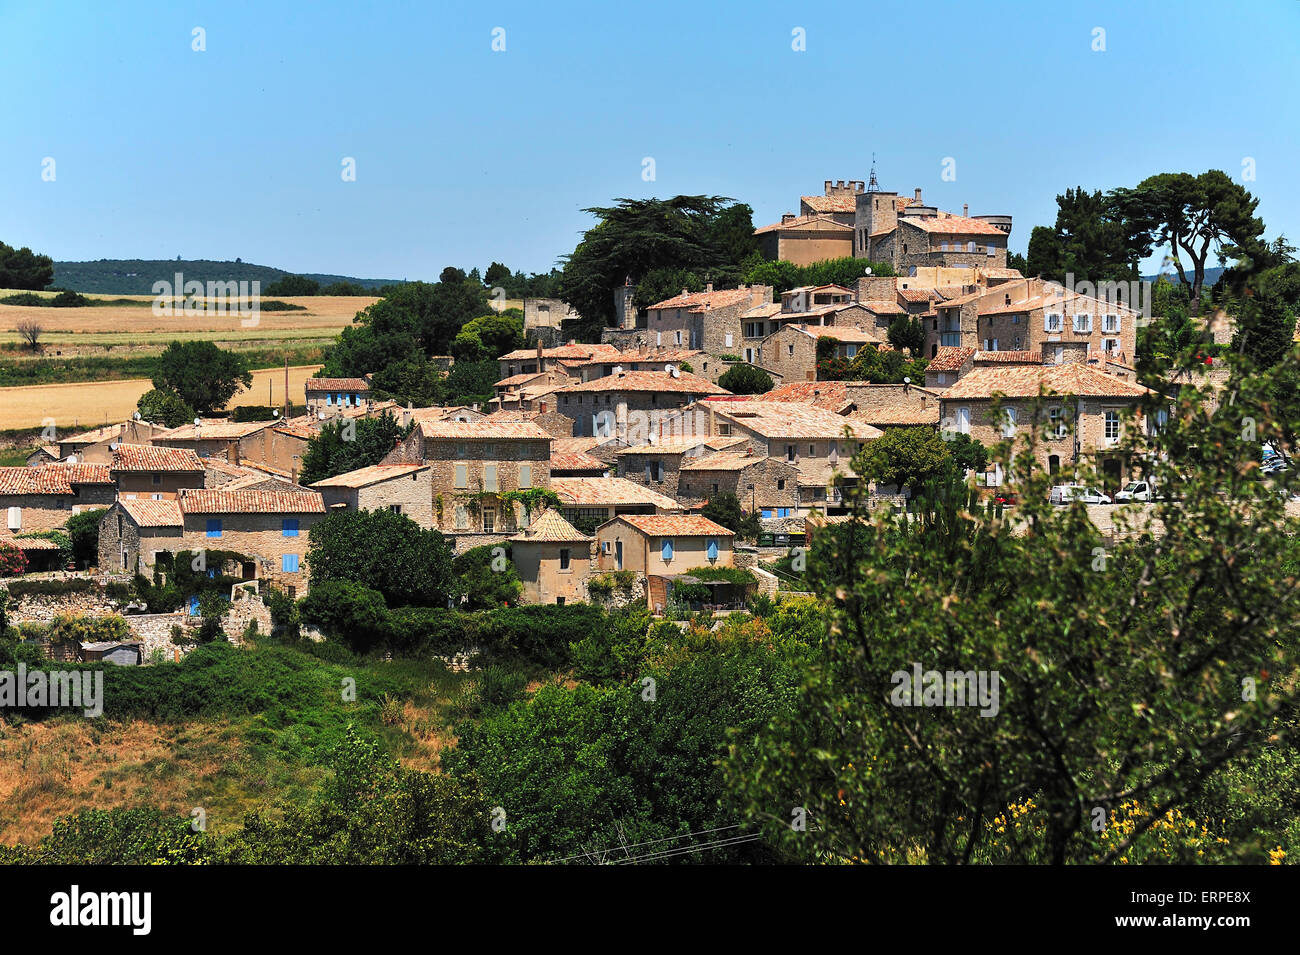 Murs, picturesquely situated on a hill, Vaucluse, Provence - Stock Image